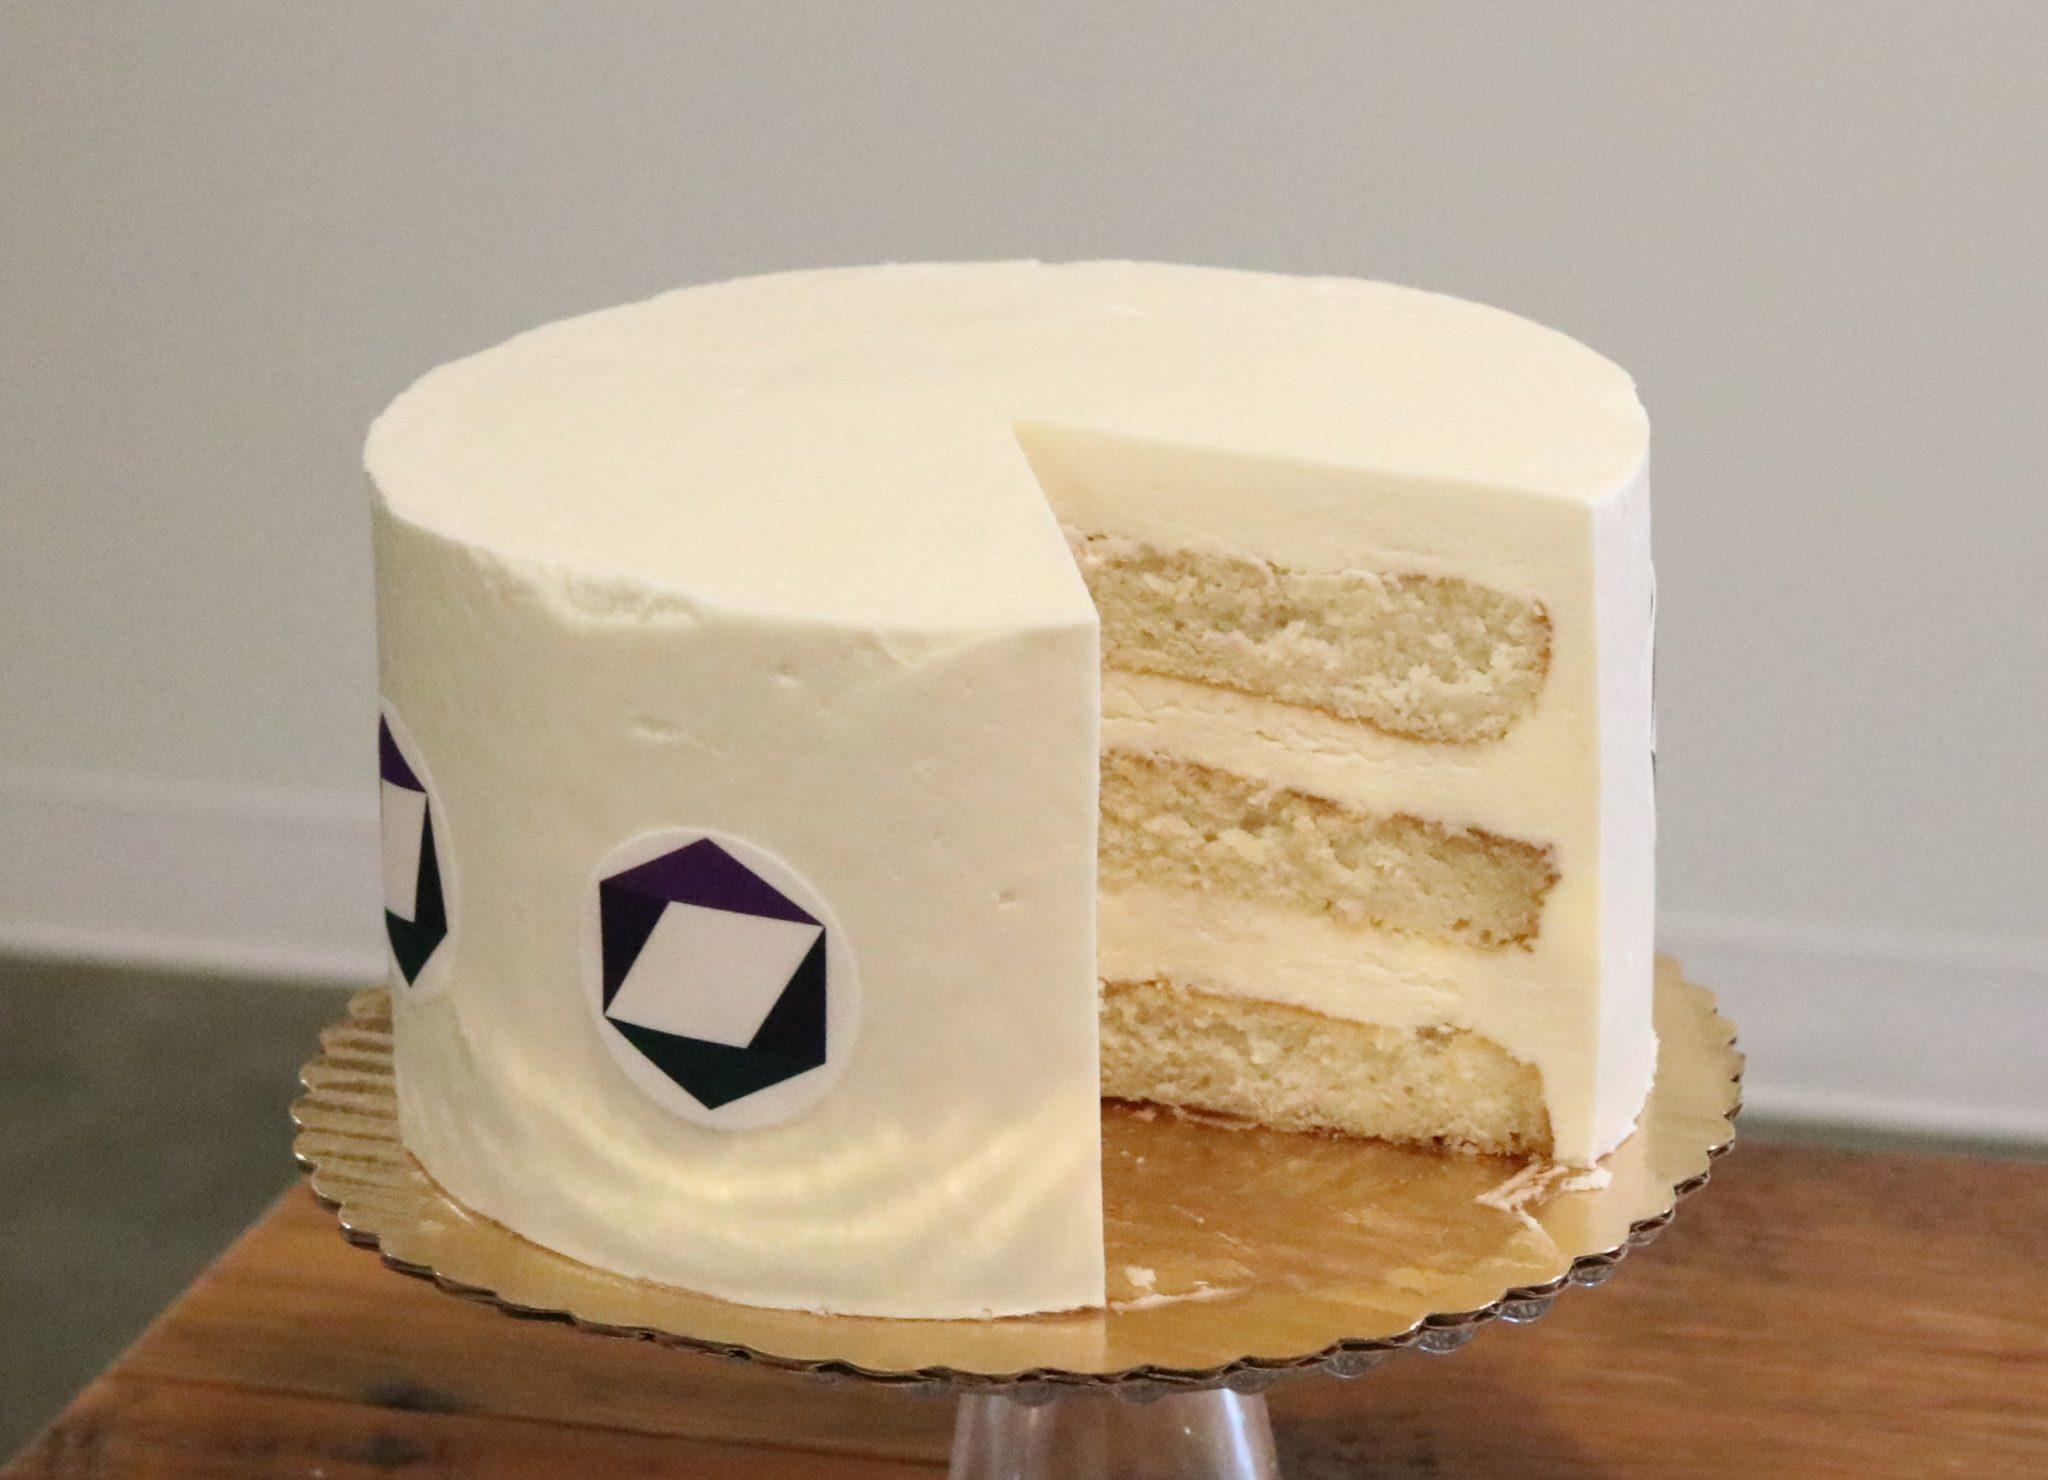 Content Types are like cakes and have different layers.